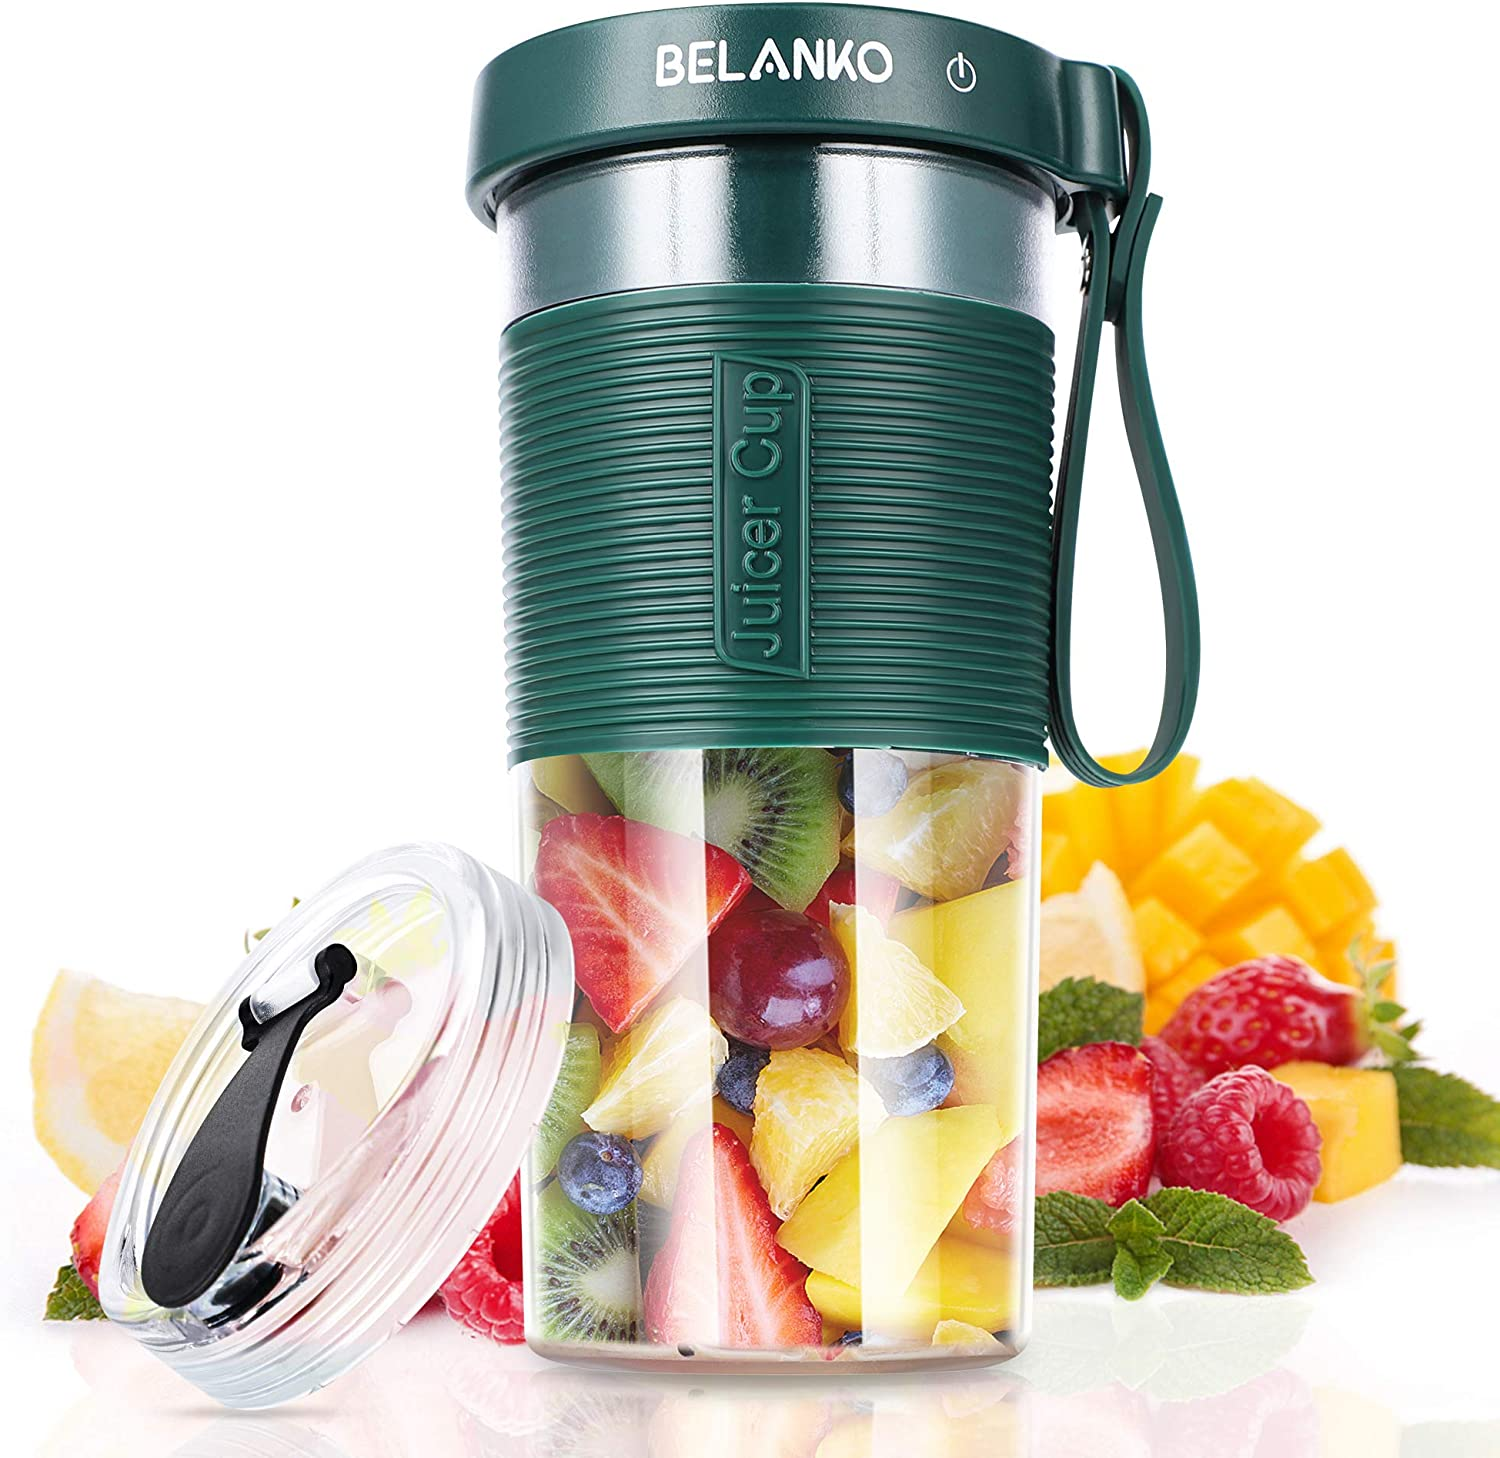 Portable Blender, BELANKO Personal Size Blender for Smoothies, Juice and Shakes, Food Grade Travel Blender Juicer Cup 11/20oz with USB Rechargeable for Home, Sport, Office, Outdoors - Dark Green